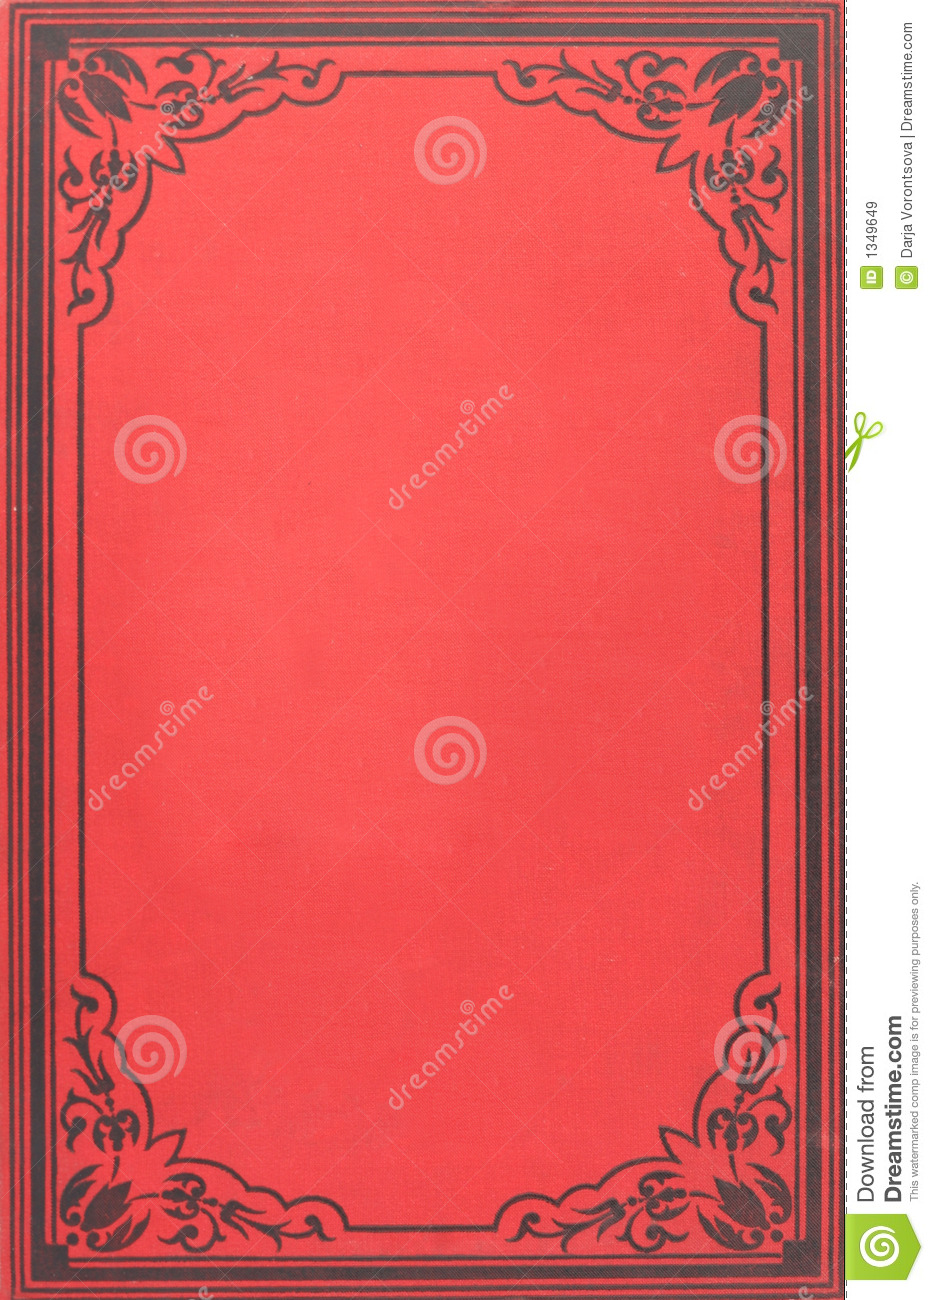 Book Cover Stock Art : Vintage book cover royalty free stock images image